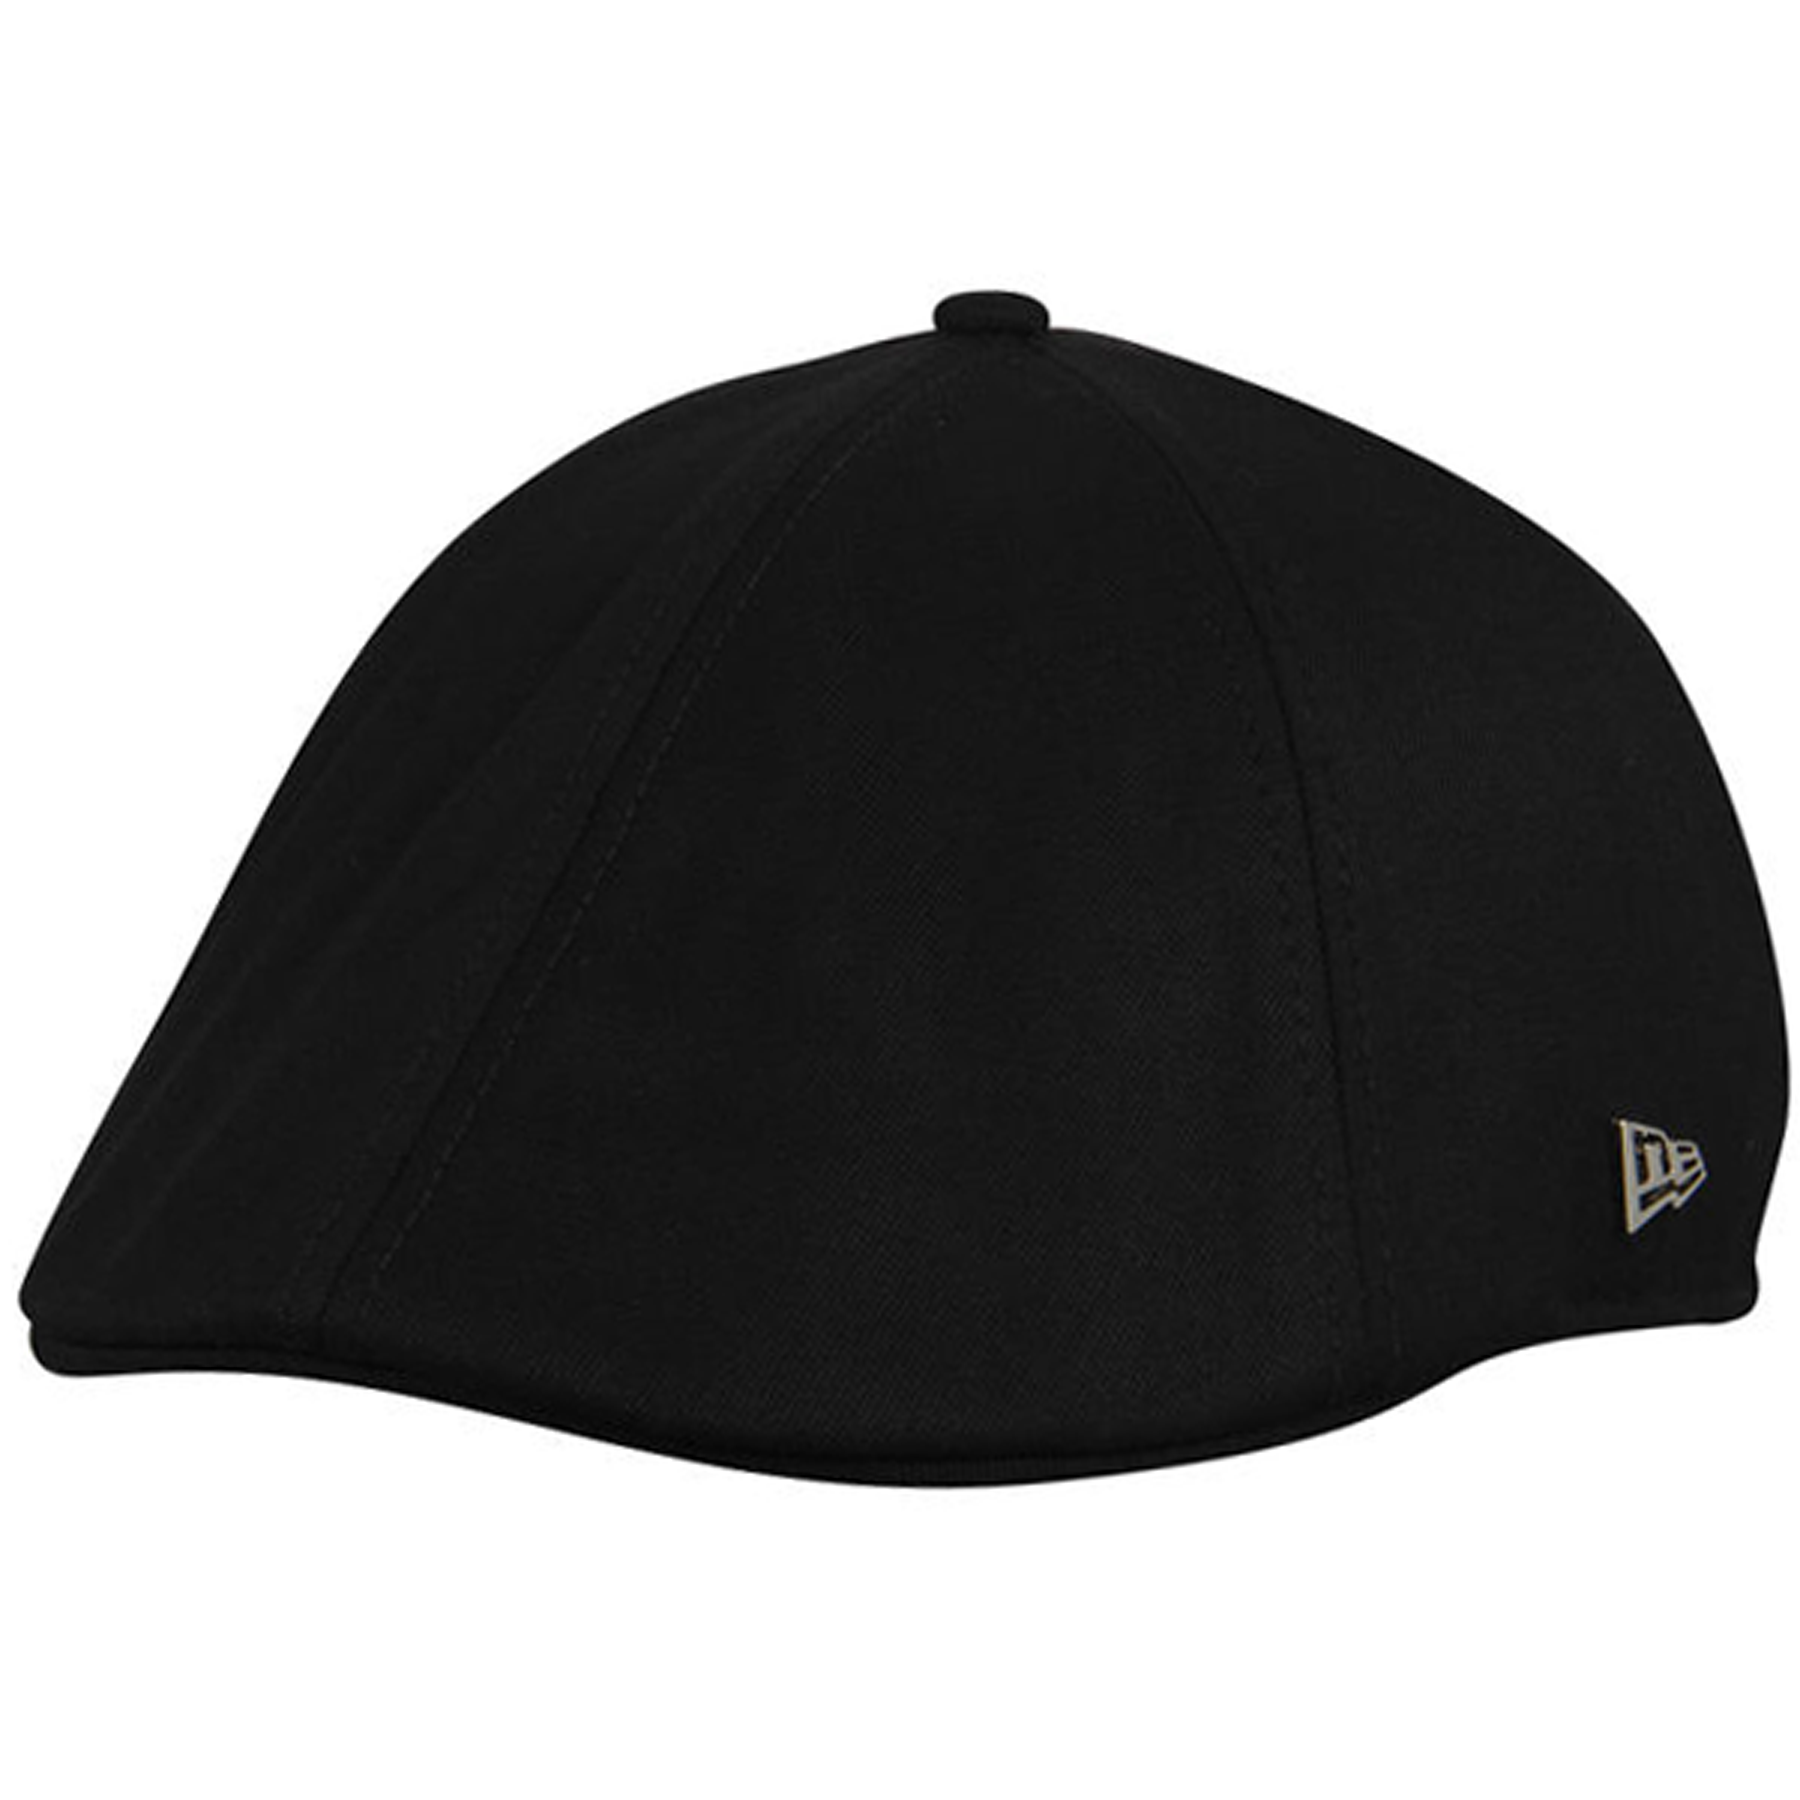 cheap for discount c6829 6f97f Another unique Sixers hat, Philadelphia 76ers Irish Duckbill hat! Tag  someone that wears Jeff caps and loves the Sixers!